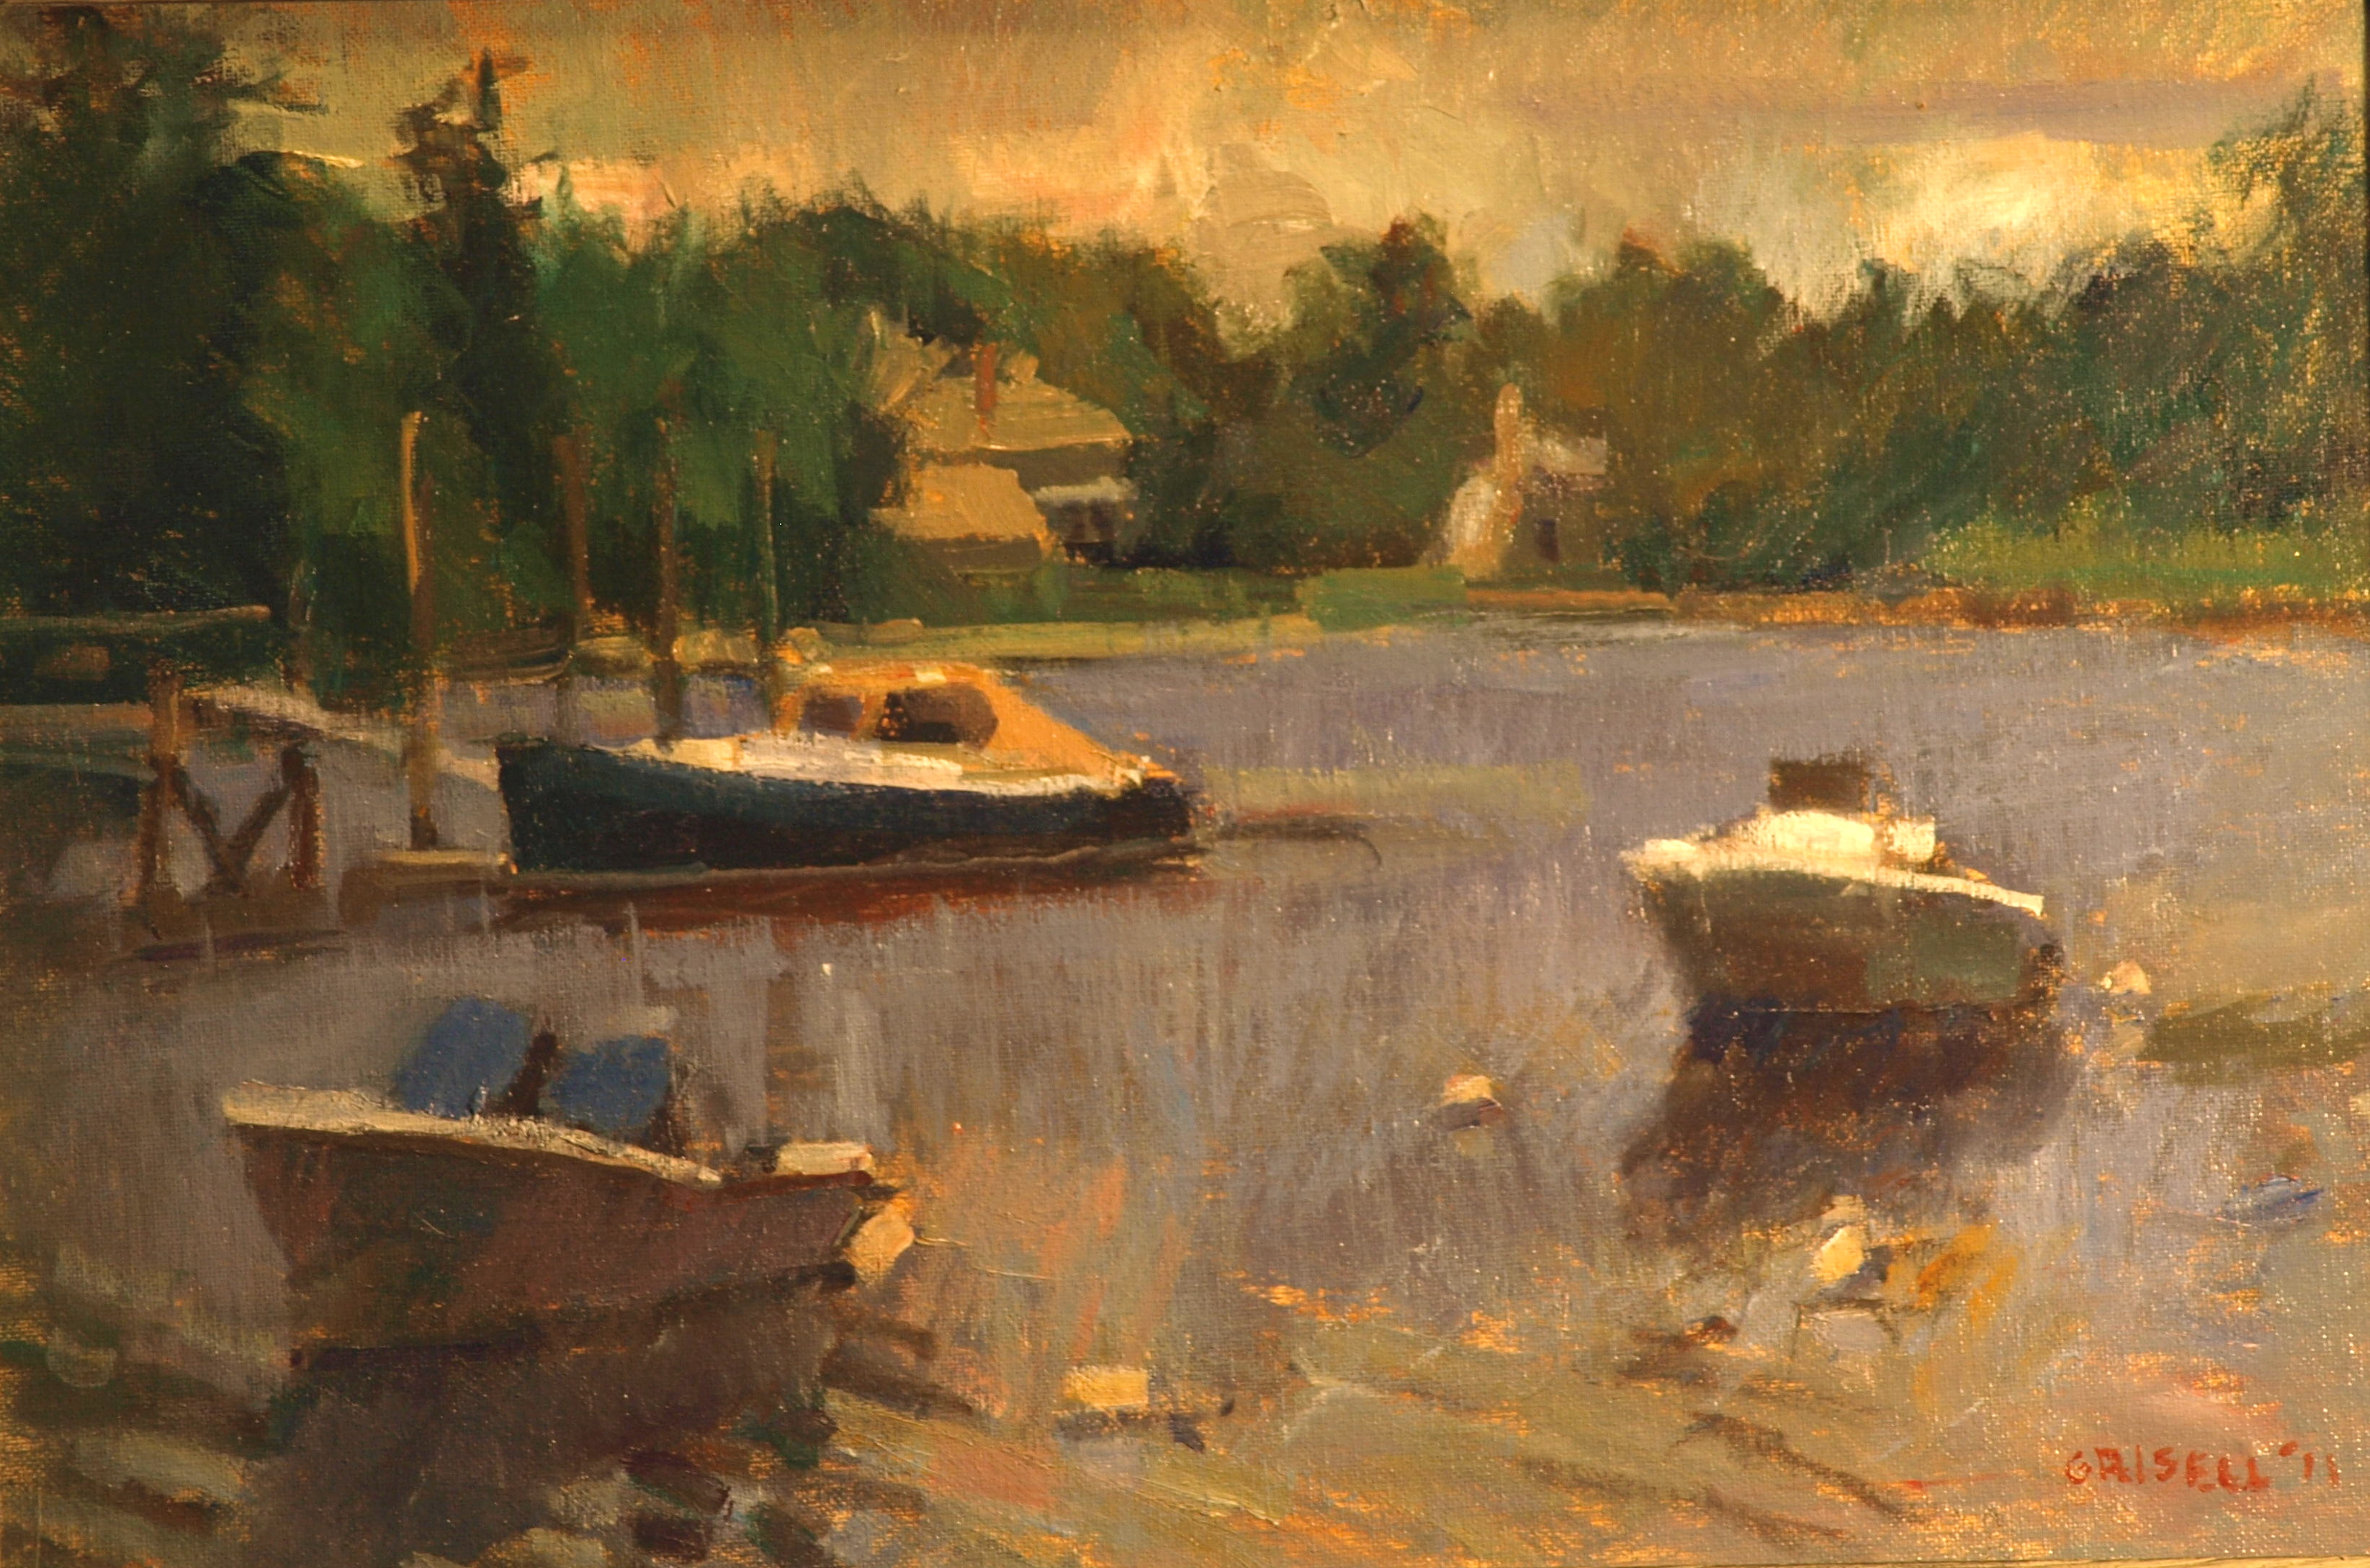 Rowayton Marina, Oil on Canvas on Panel, 12 x 18 Inches, by Susan Grisell, $275